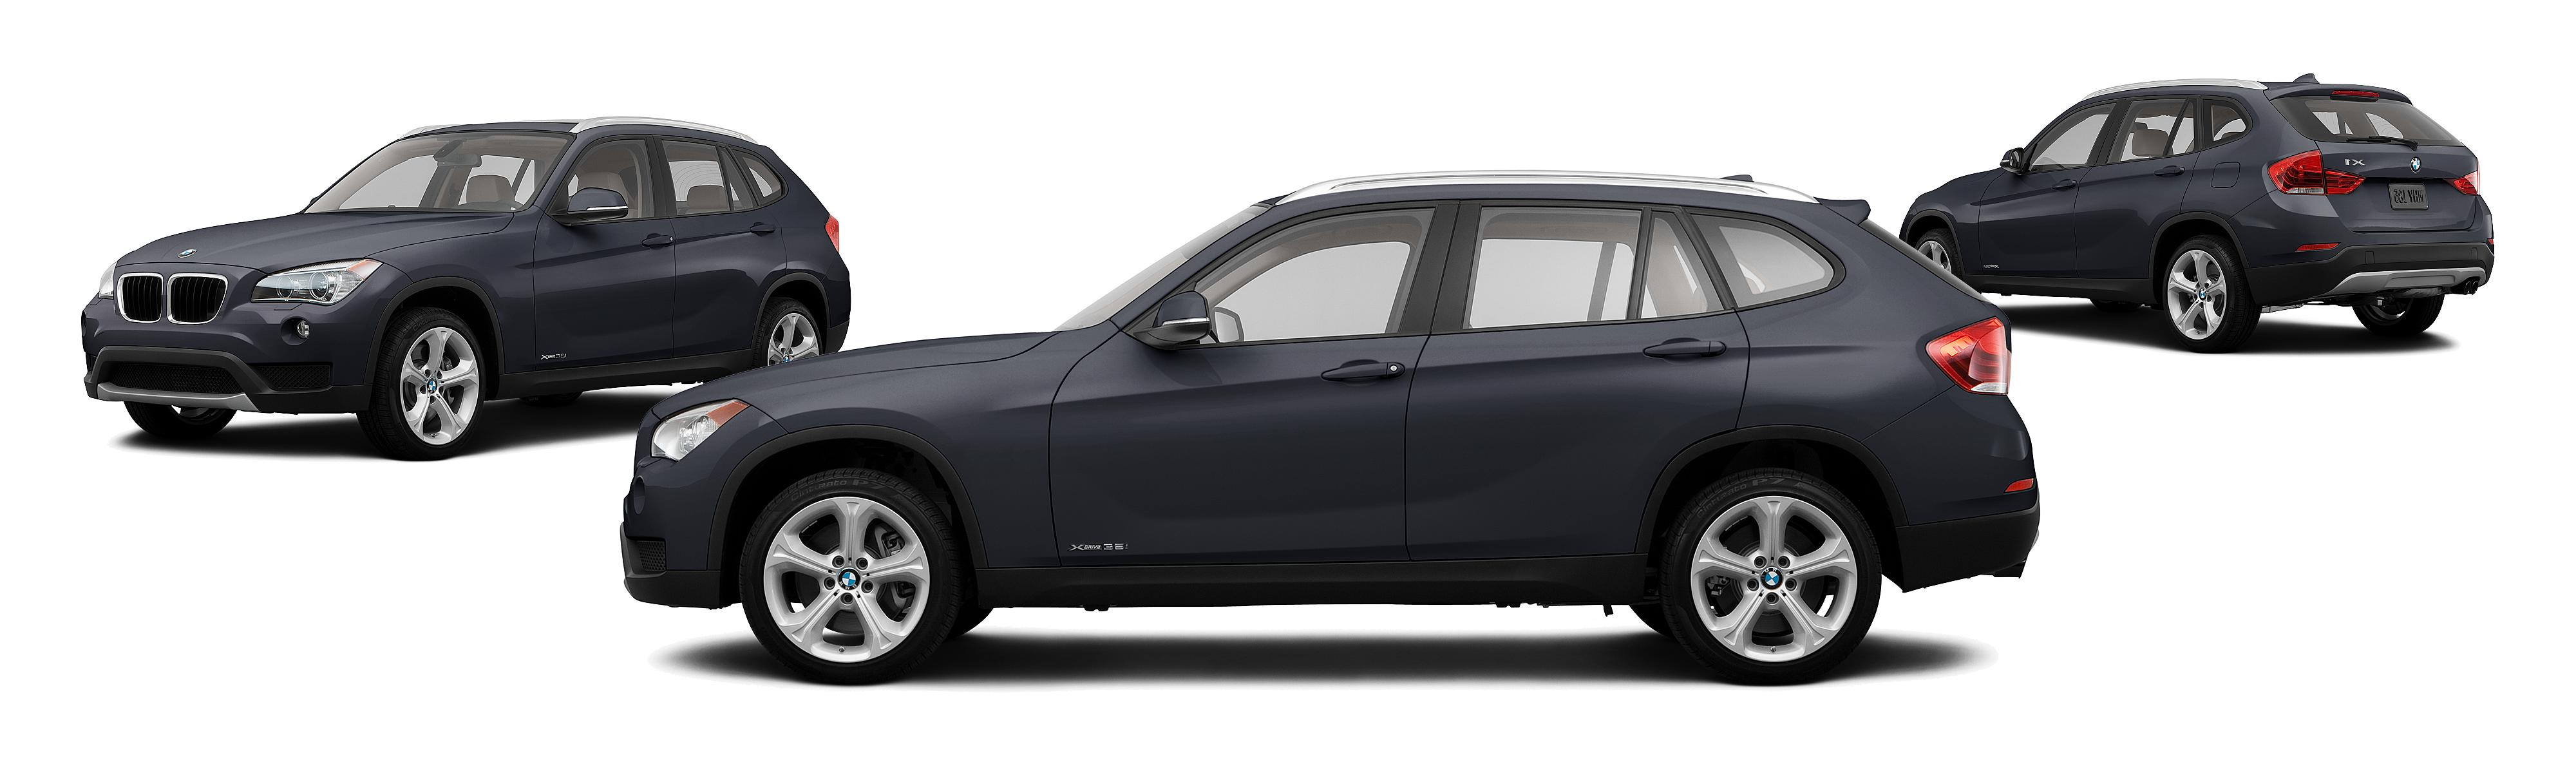 mineral bmw large groovecar awd metallic composite research grey suv